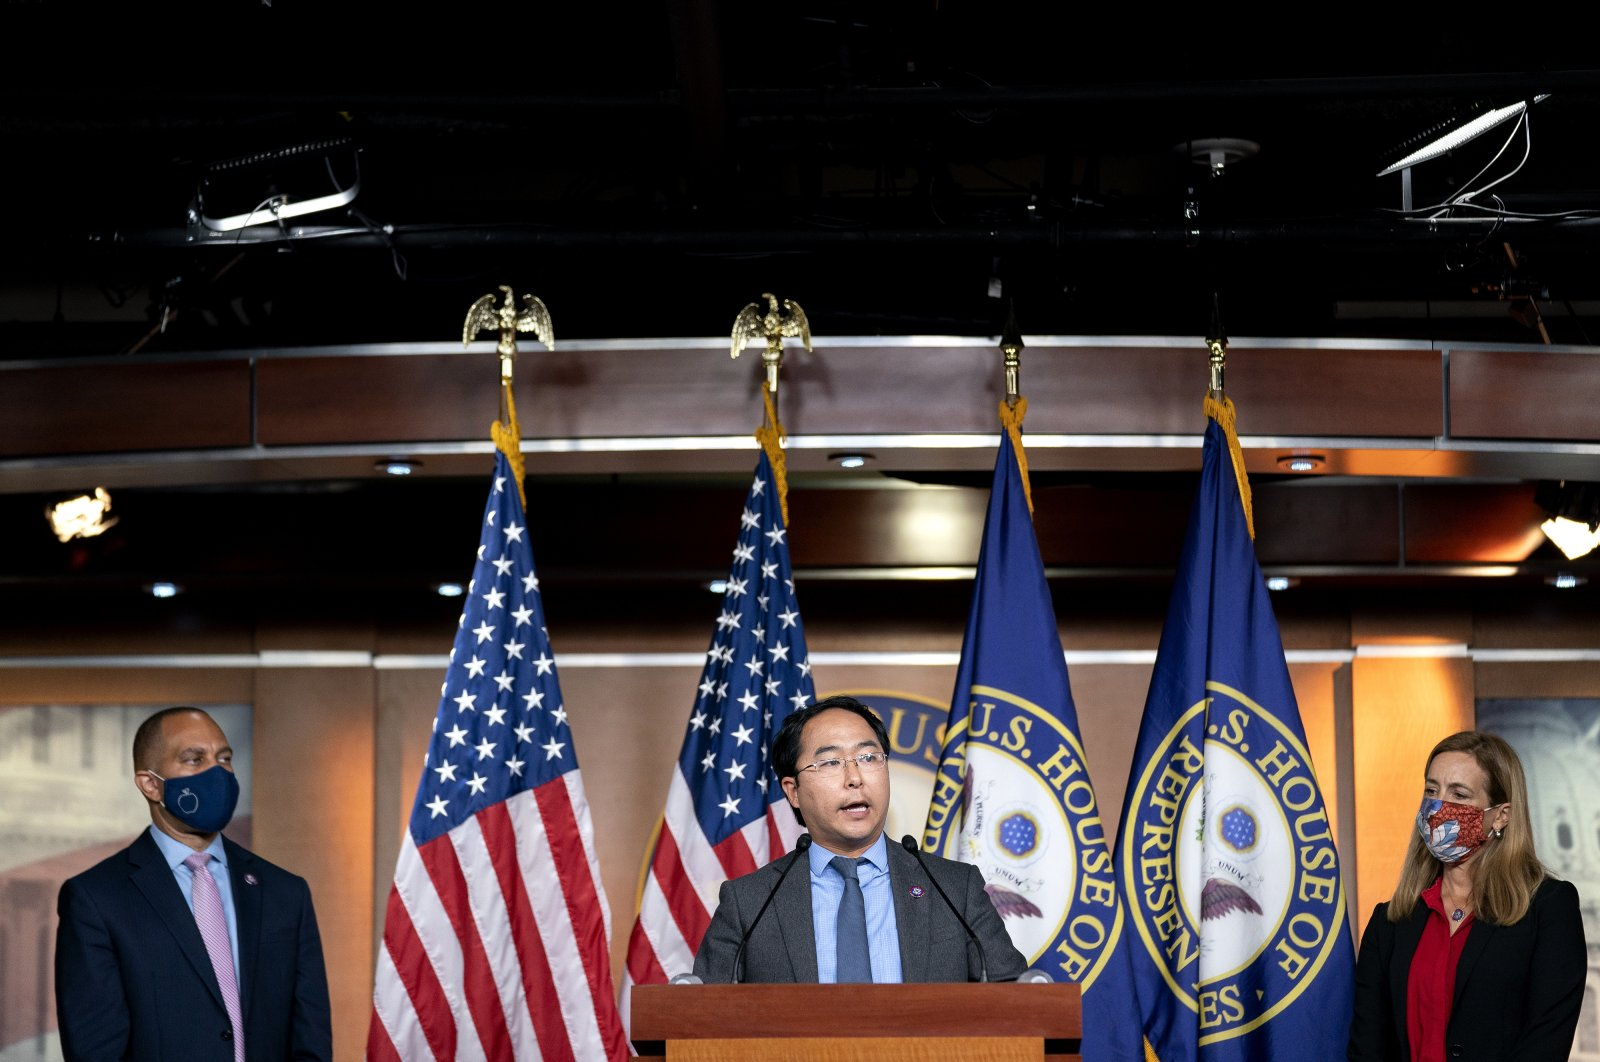 Representative Andy Kim, a Democrat from New Jersey, center, speaks during a news conference at the U.S. Capitol in Washington, D.C., U.S., Aug. 24, 2021. (Getty Images)